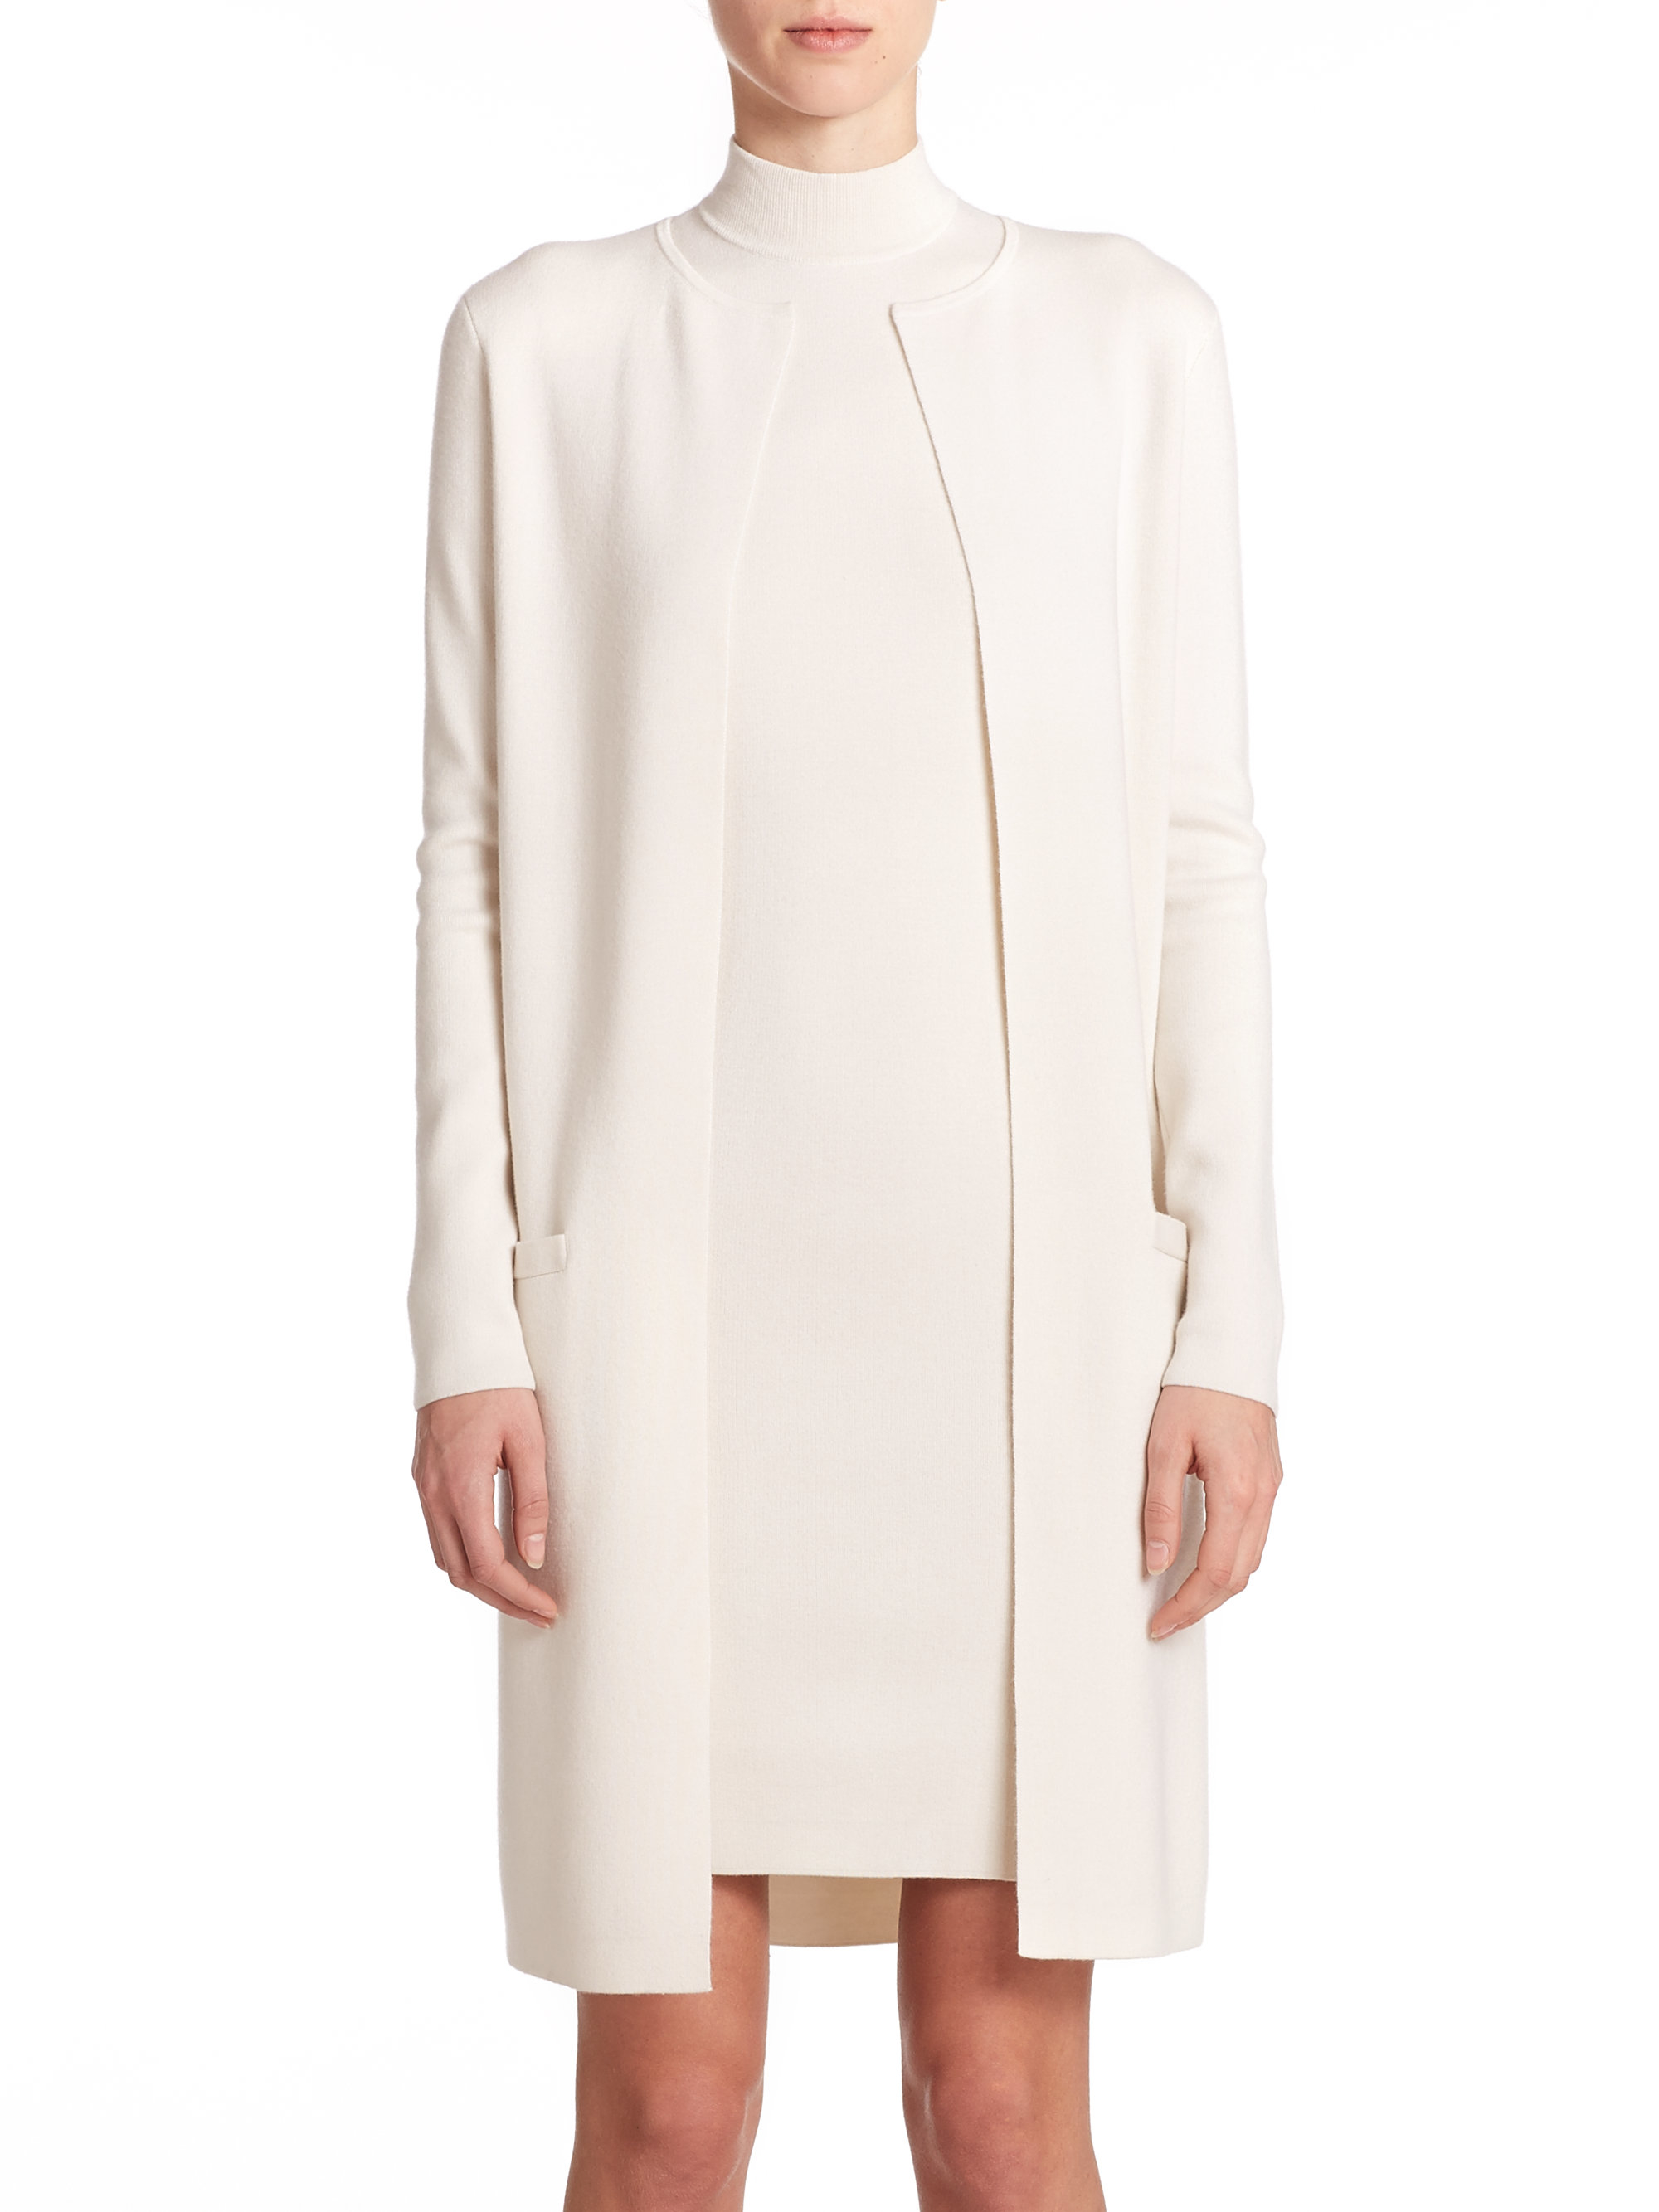 Lyst - Ralph Lauren Black Label Cashmere/silk Long ...